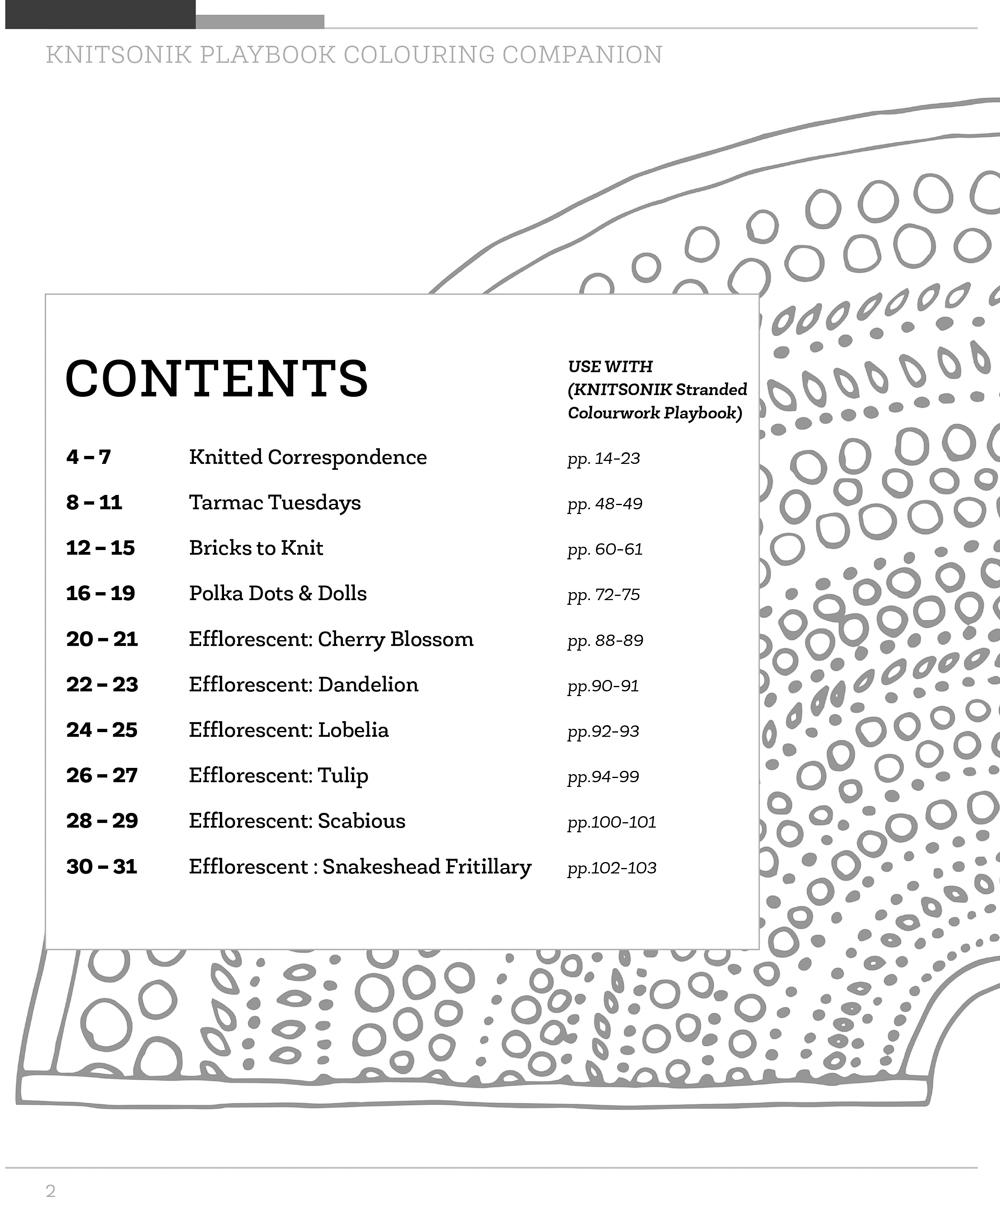 KNITSONIK Playbook Colouring Companion contents page